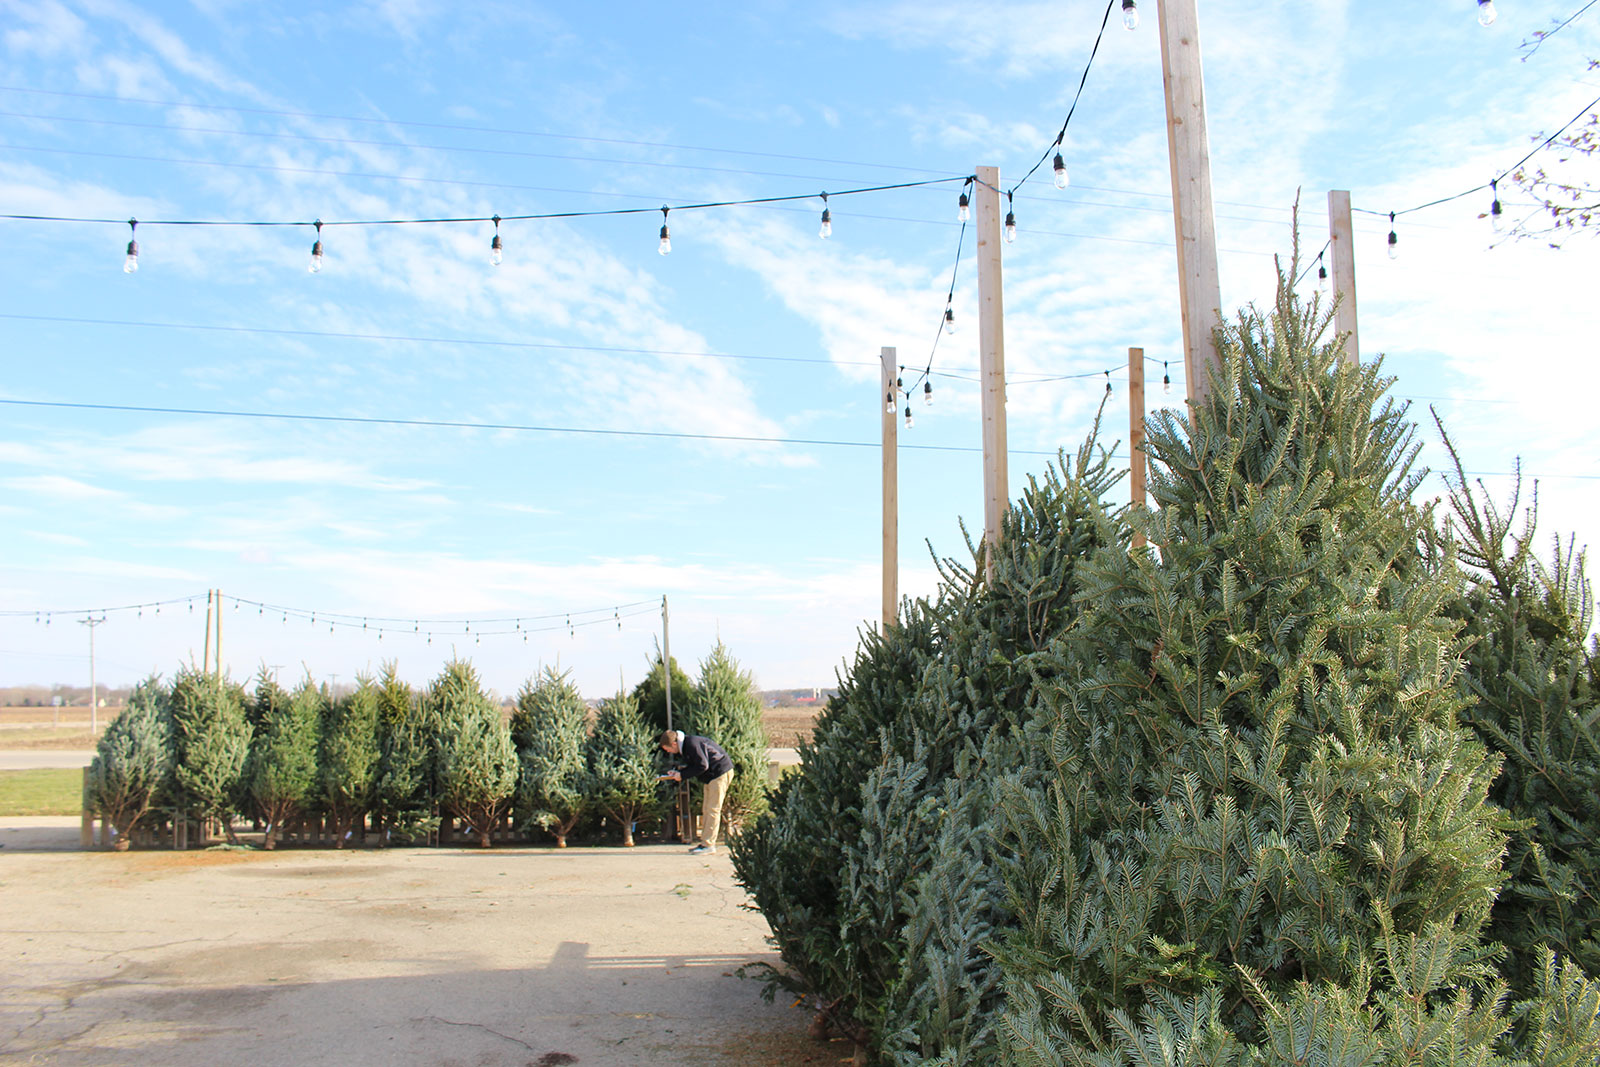 real christmas trees for sale in appleton wi - Real Christmas Trees For Sale